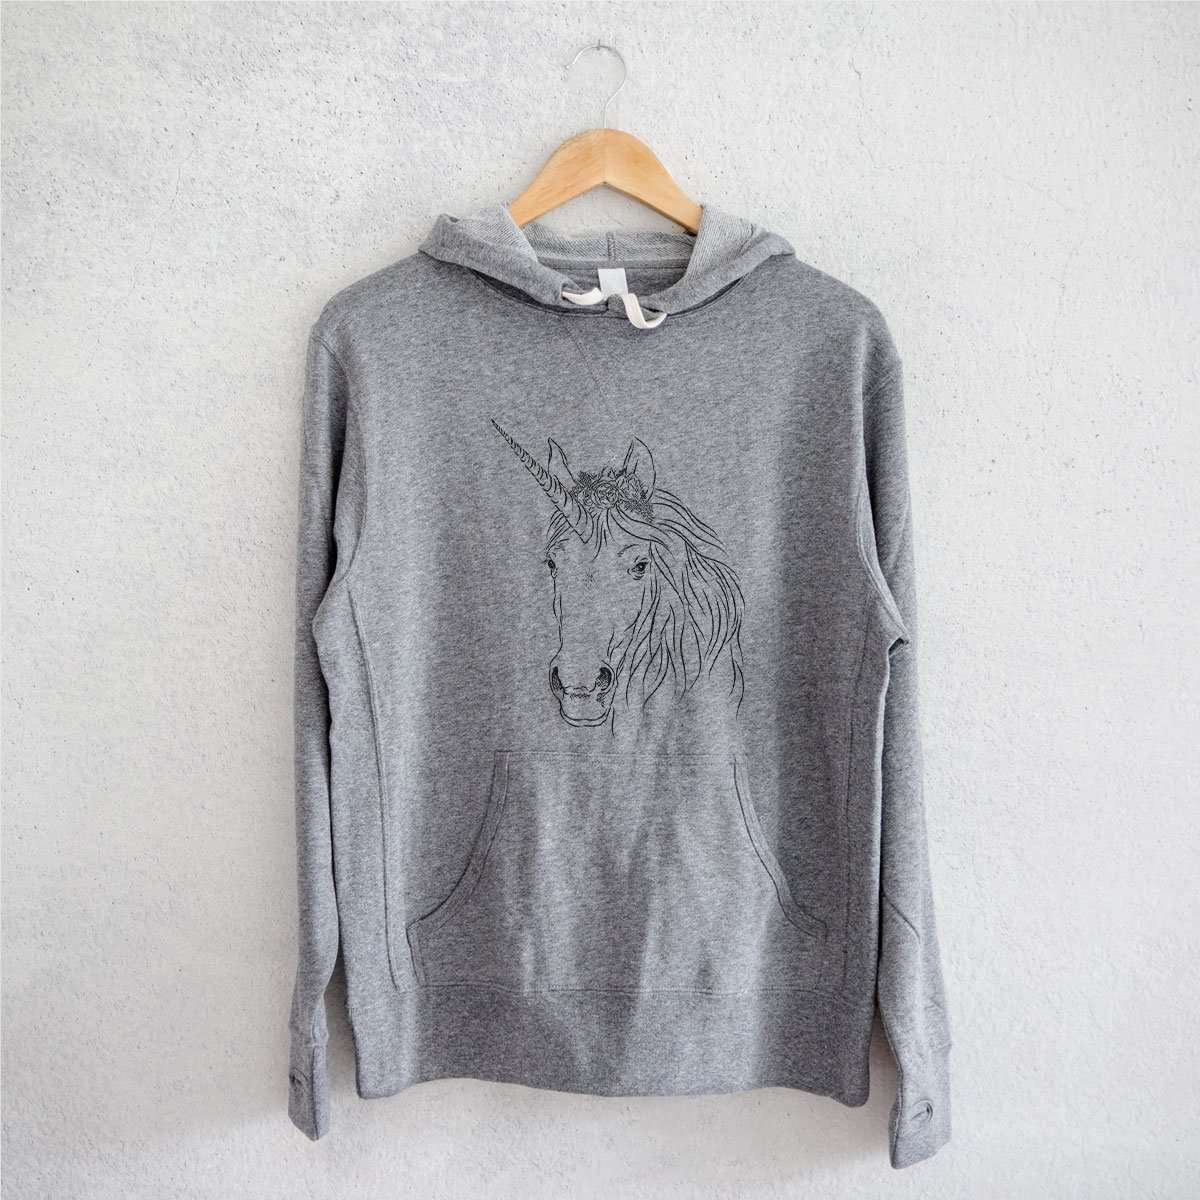 Cosmic Unicorn - French Terry Hooded Sweatshirt